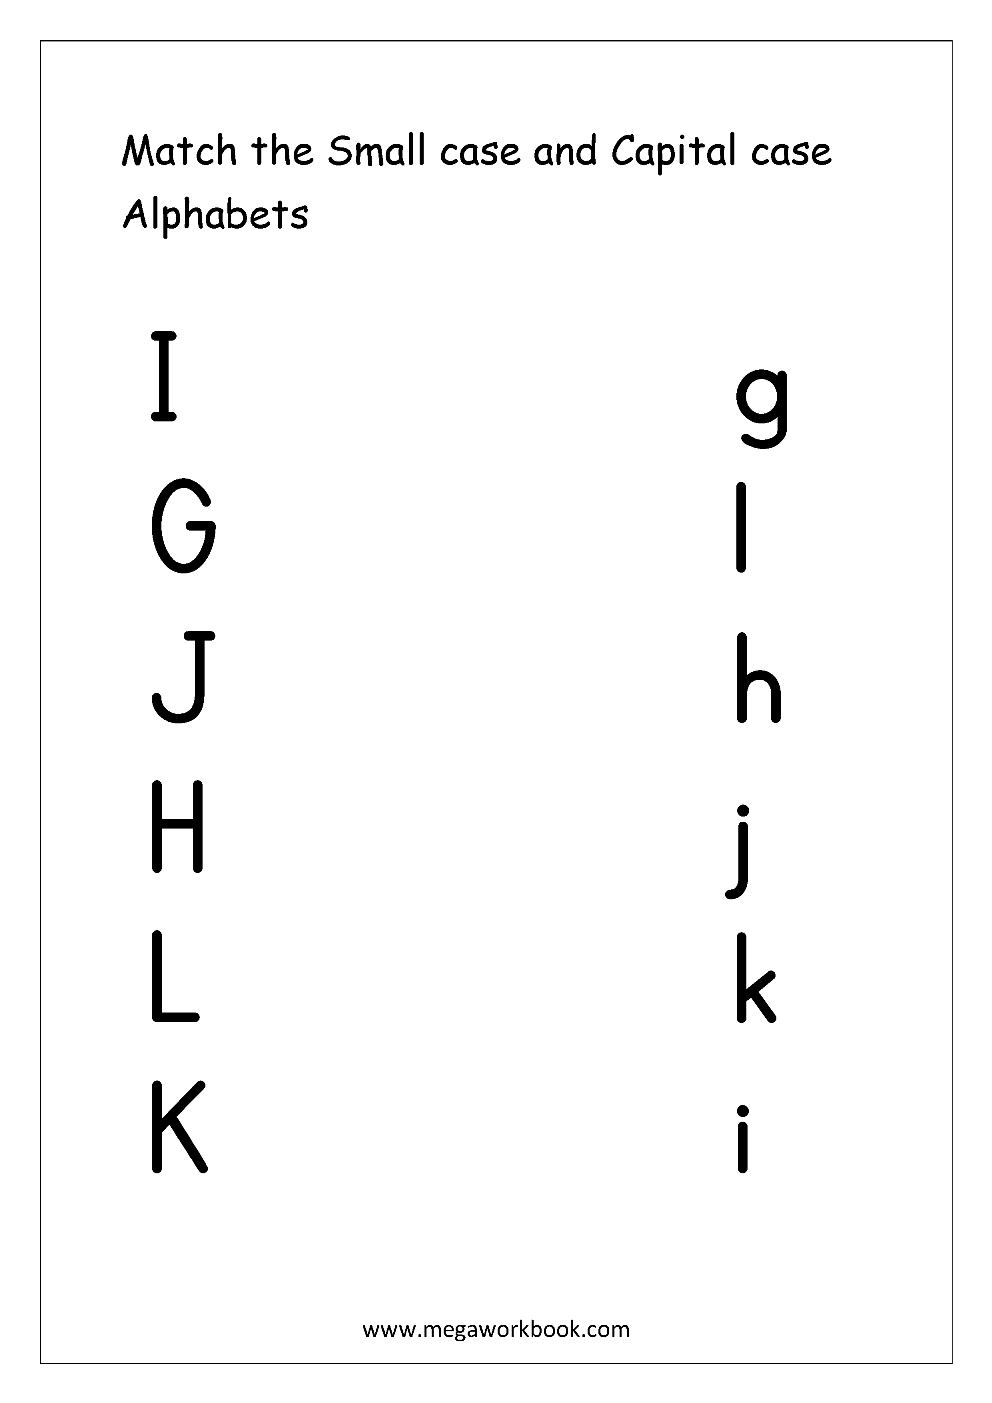 Free English Worksheets - Alphabet Matching - Megaworkbook for Letter Matching Worksheets